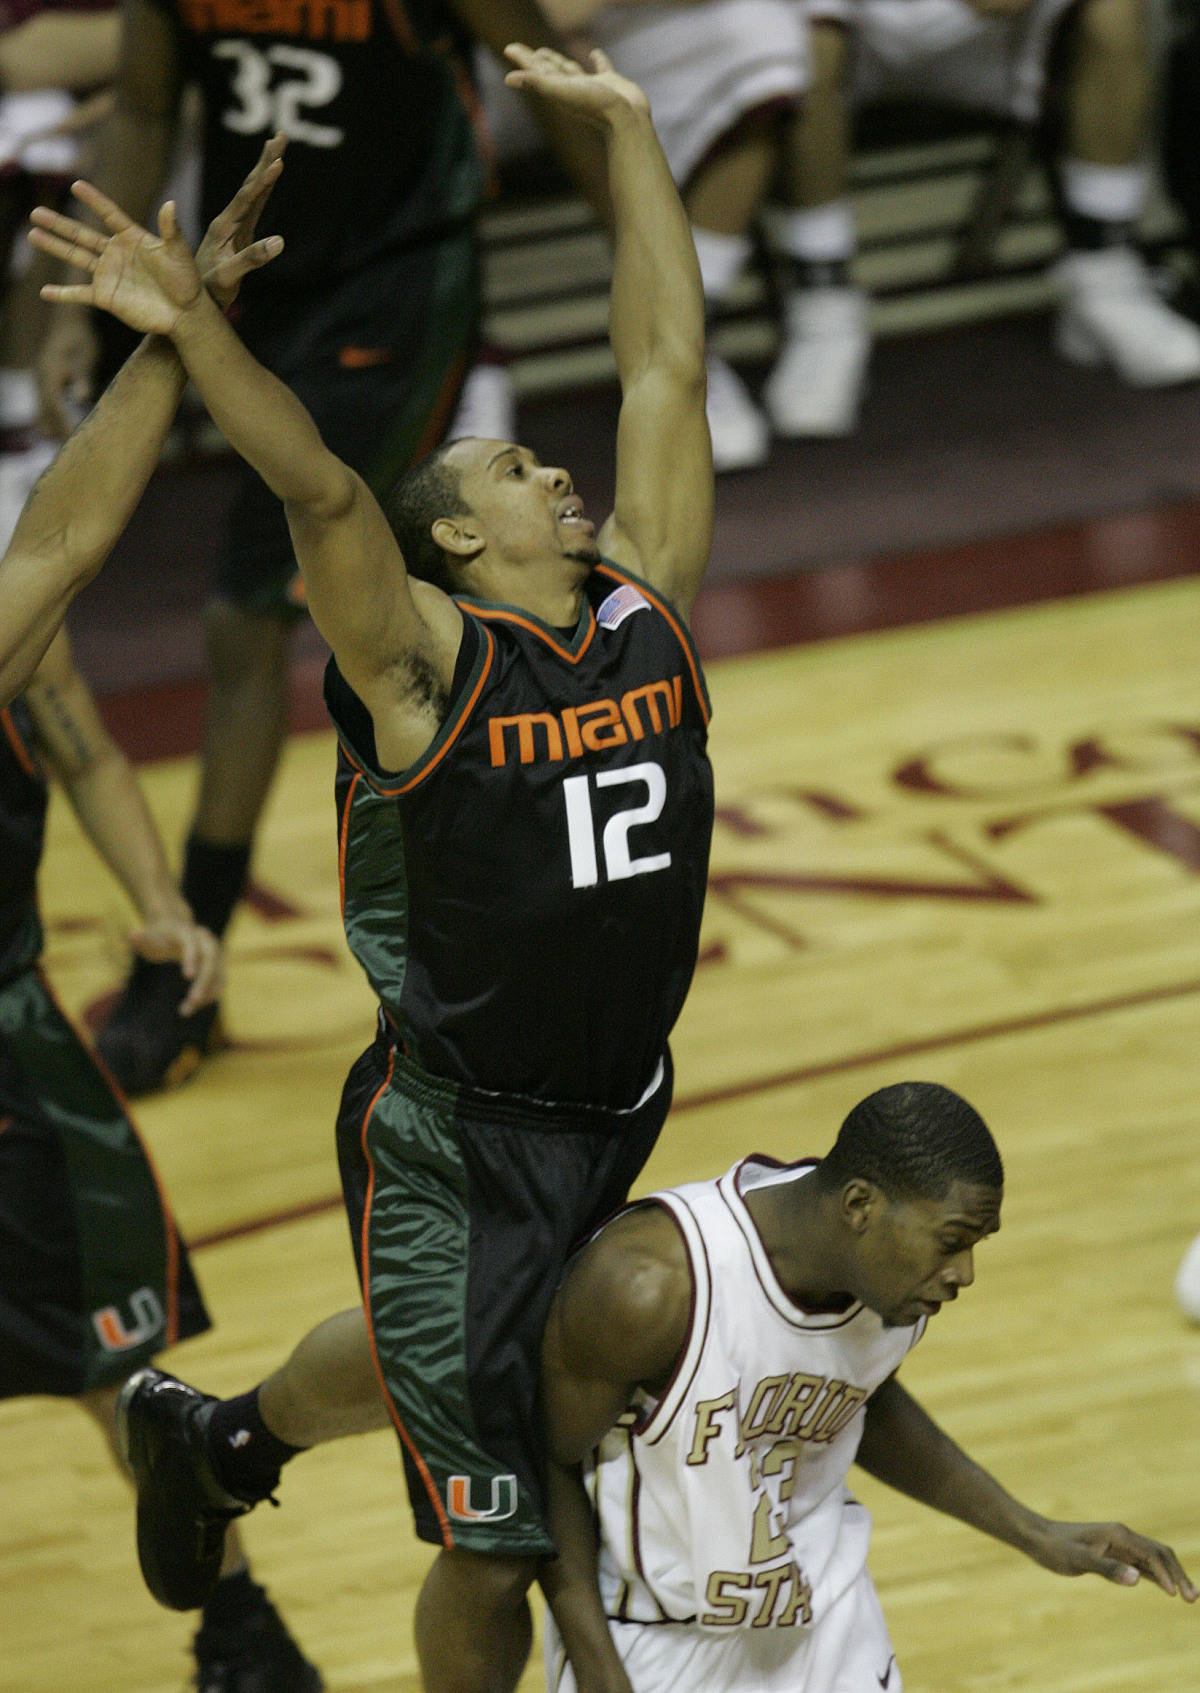 Miami's Anthony Harris (12) jumps on the back of Florida State's Toney Douglas after making a pass in the first half of a college basketball game, Saturday, Jan. 20, 2007, in Tallahassee, Fla. (AP Photo/Phil Coale)